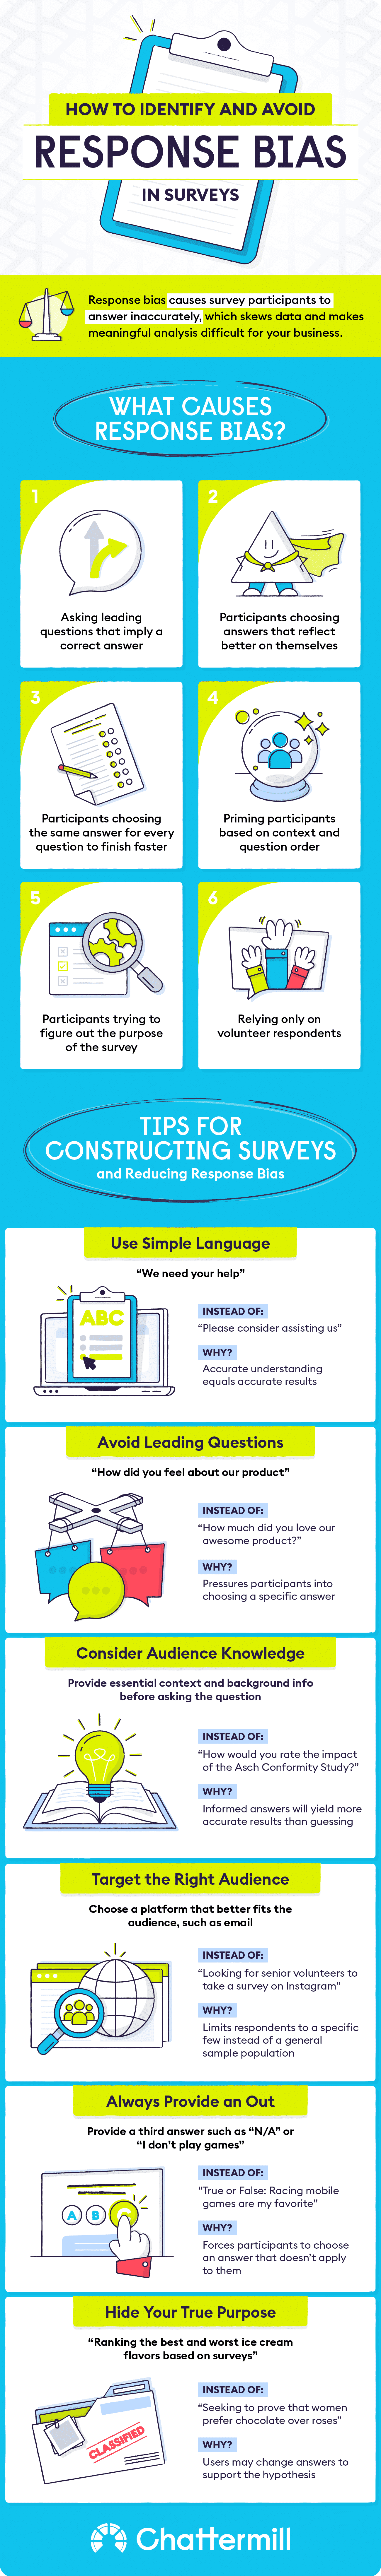 How to Identify and Avoid Response Bias in Surveys